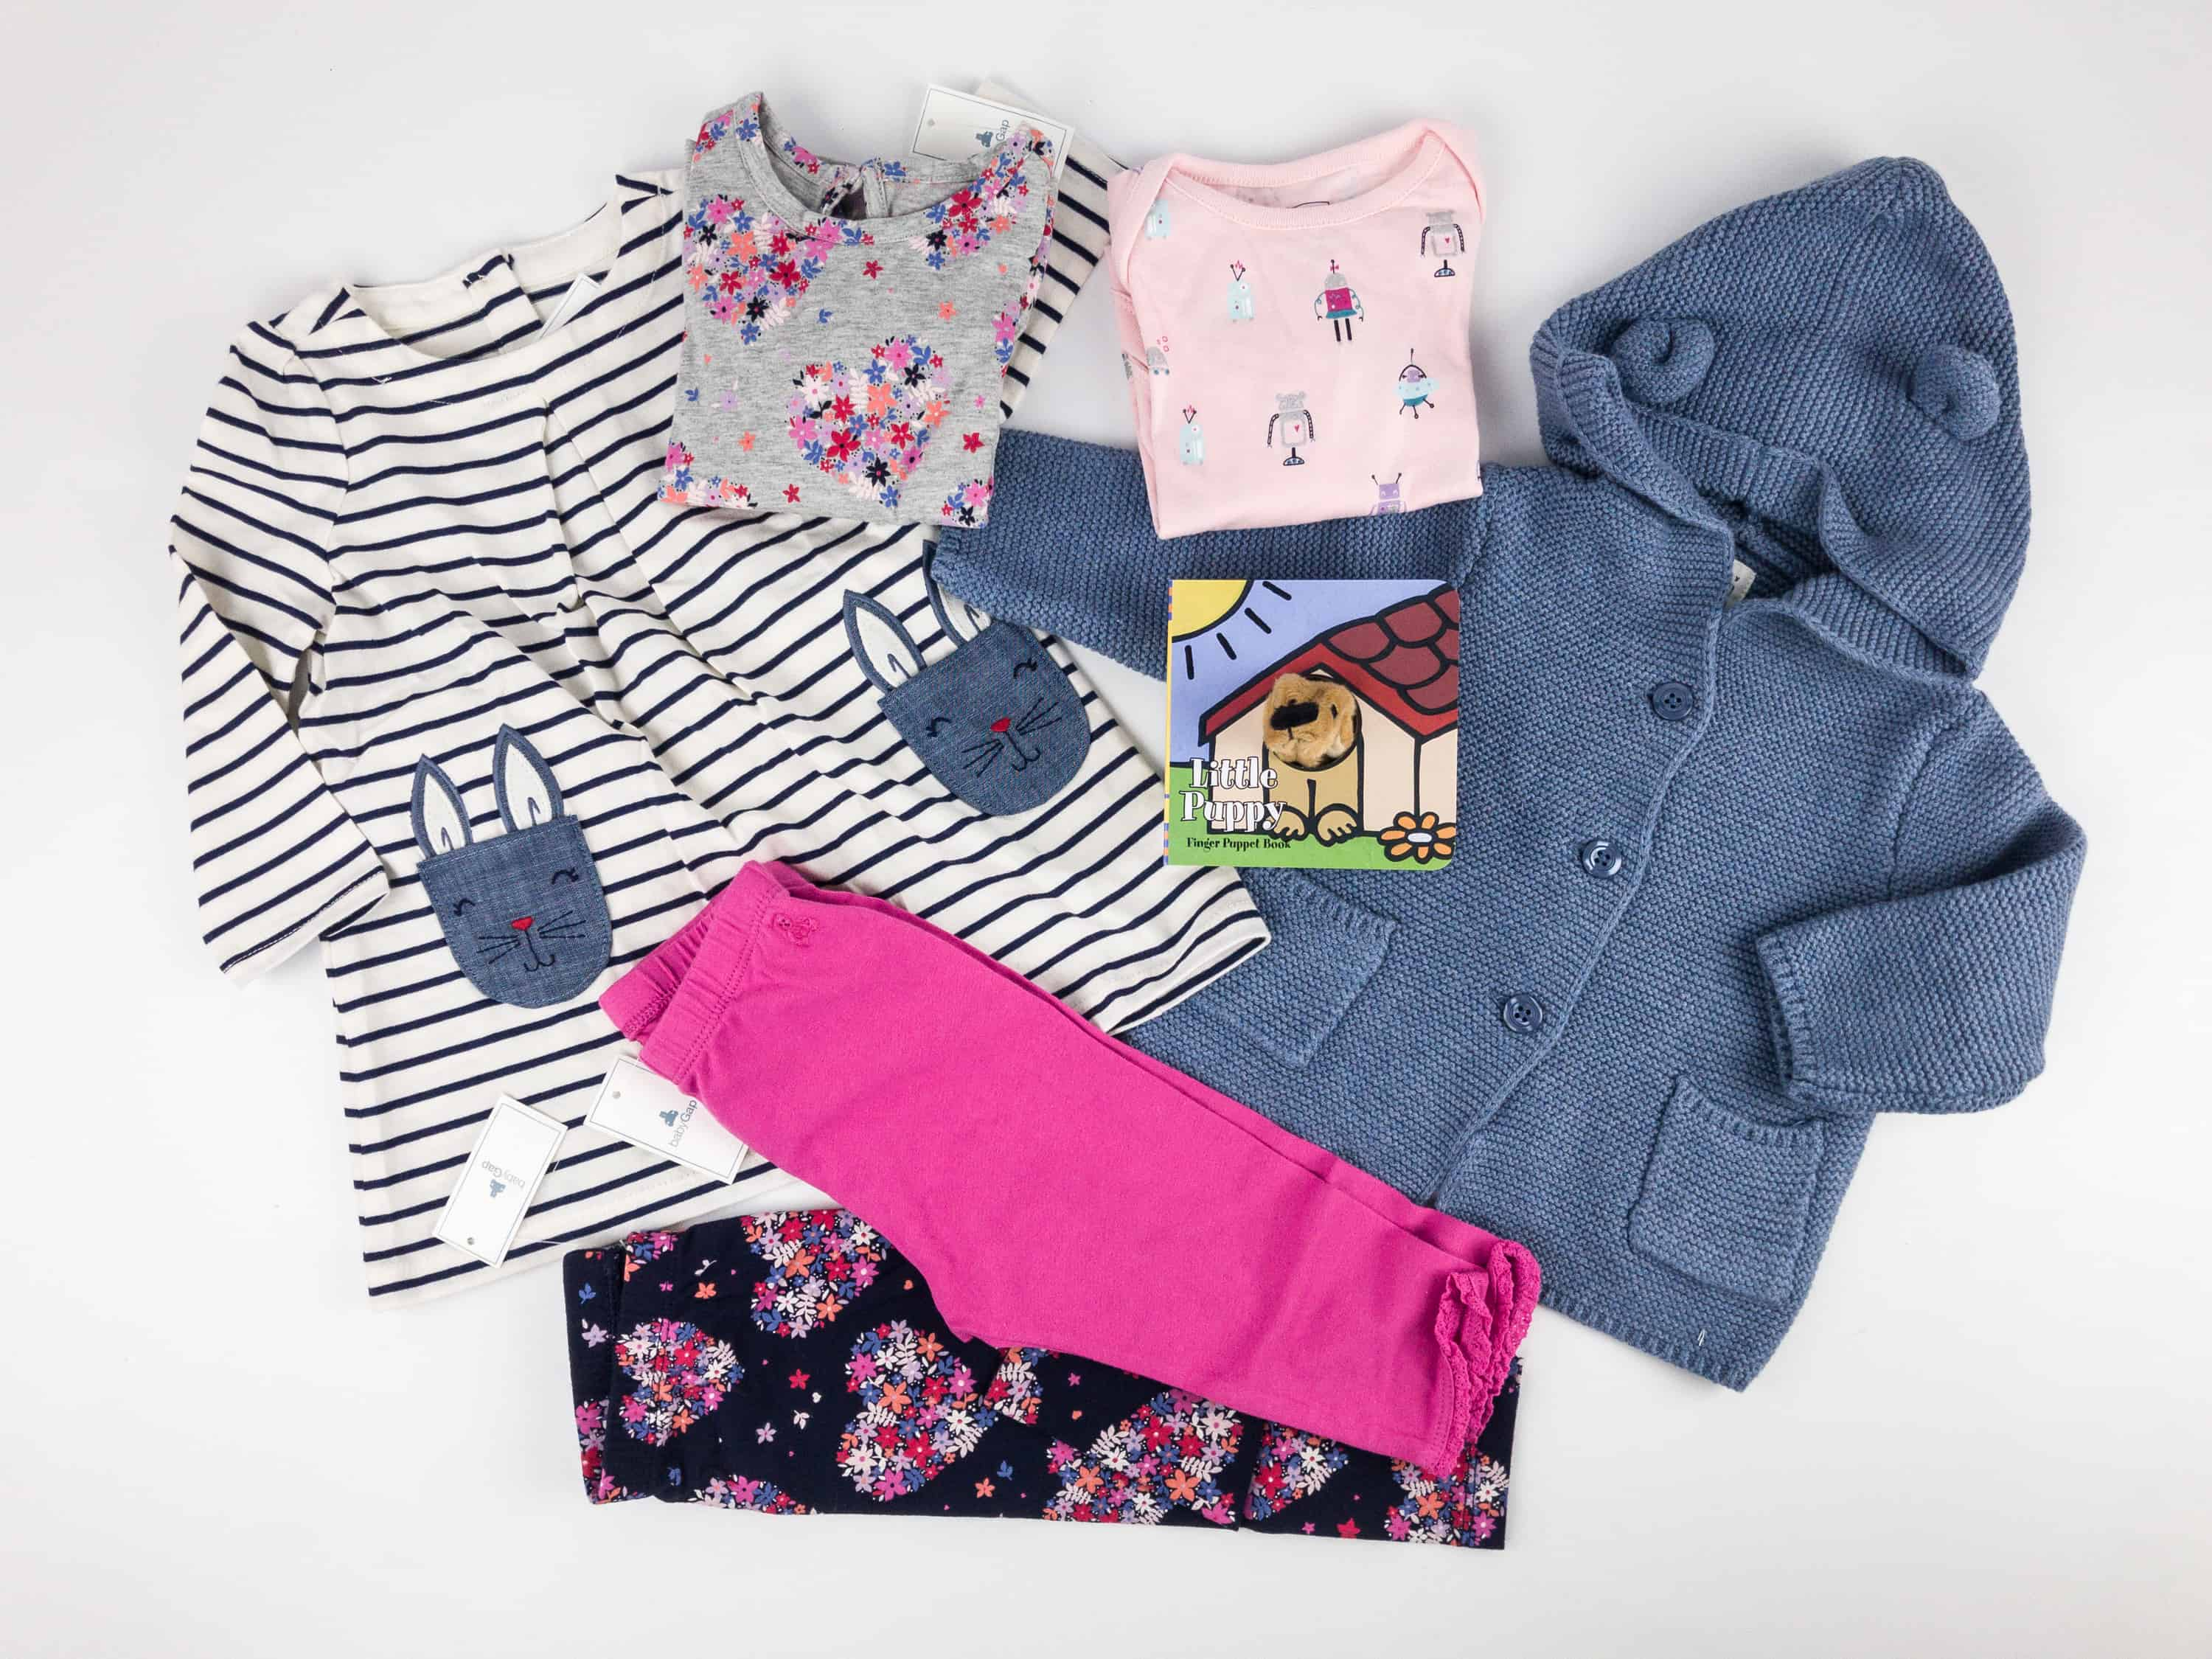 babyGap OutfitBox Winter 2017 Subscription Box Review hello